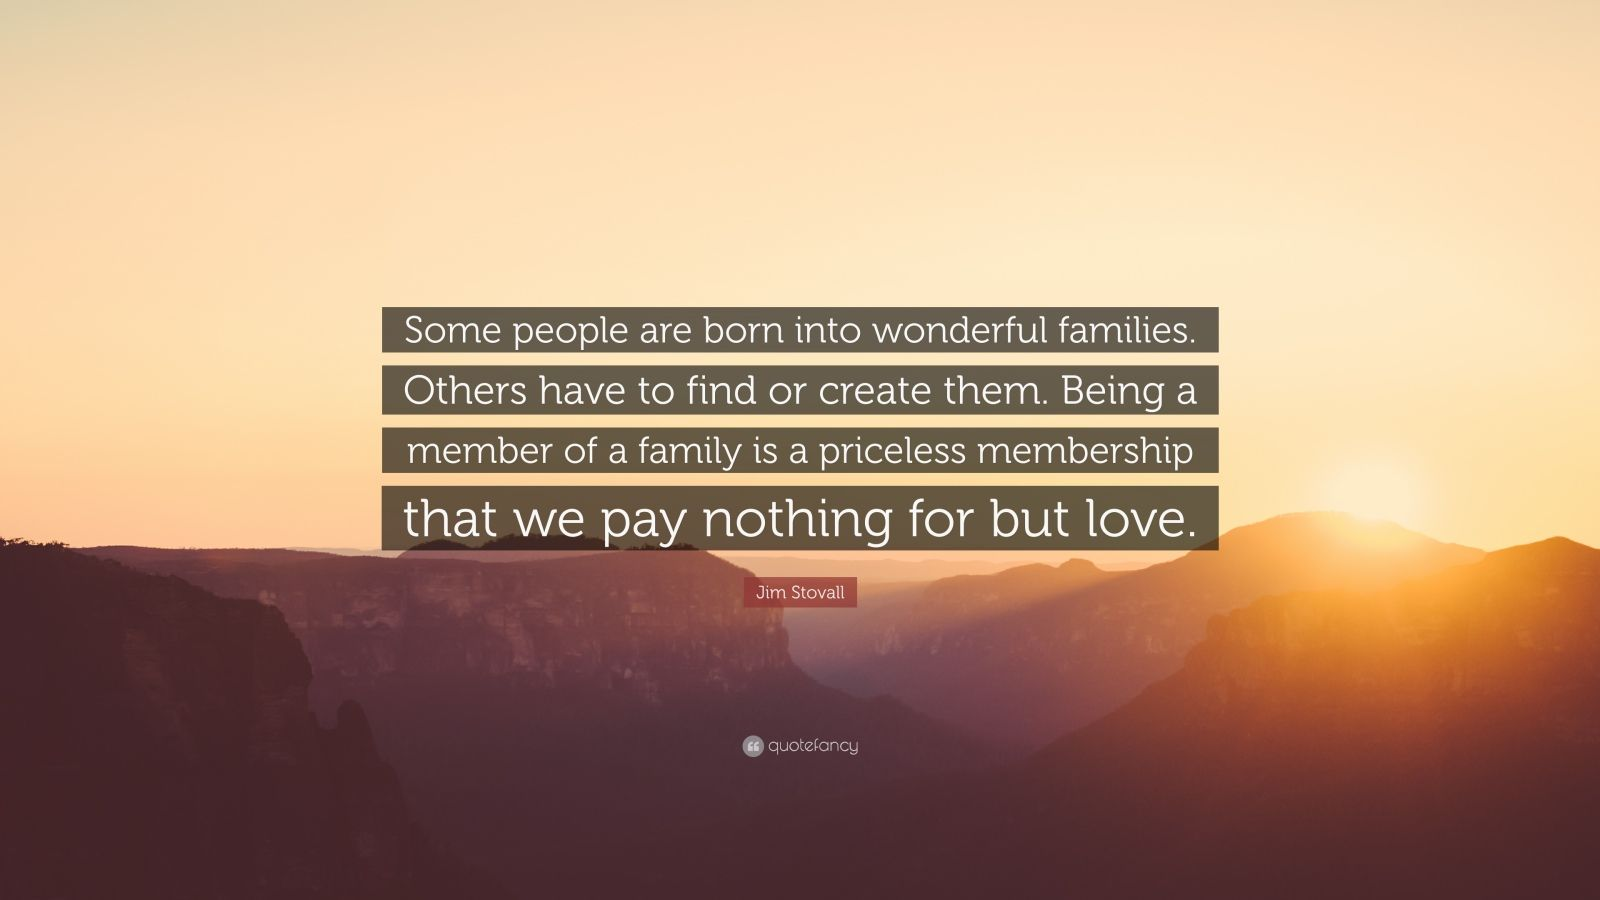 """Jim Stovall Quote: """"Some people are born into wonderful families. Others have to find or create them. Being a member of a family is a priceless membership that we pay nothing for but love."""""""